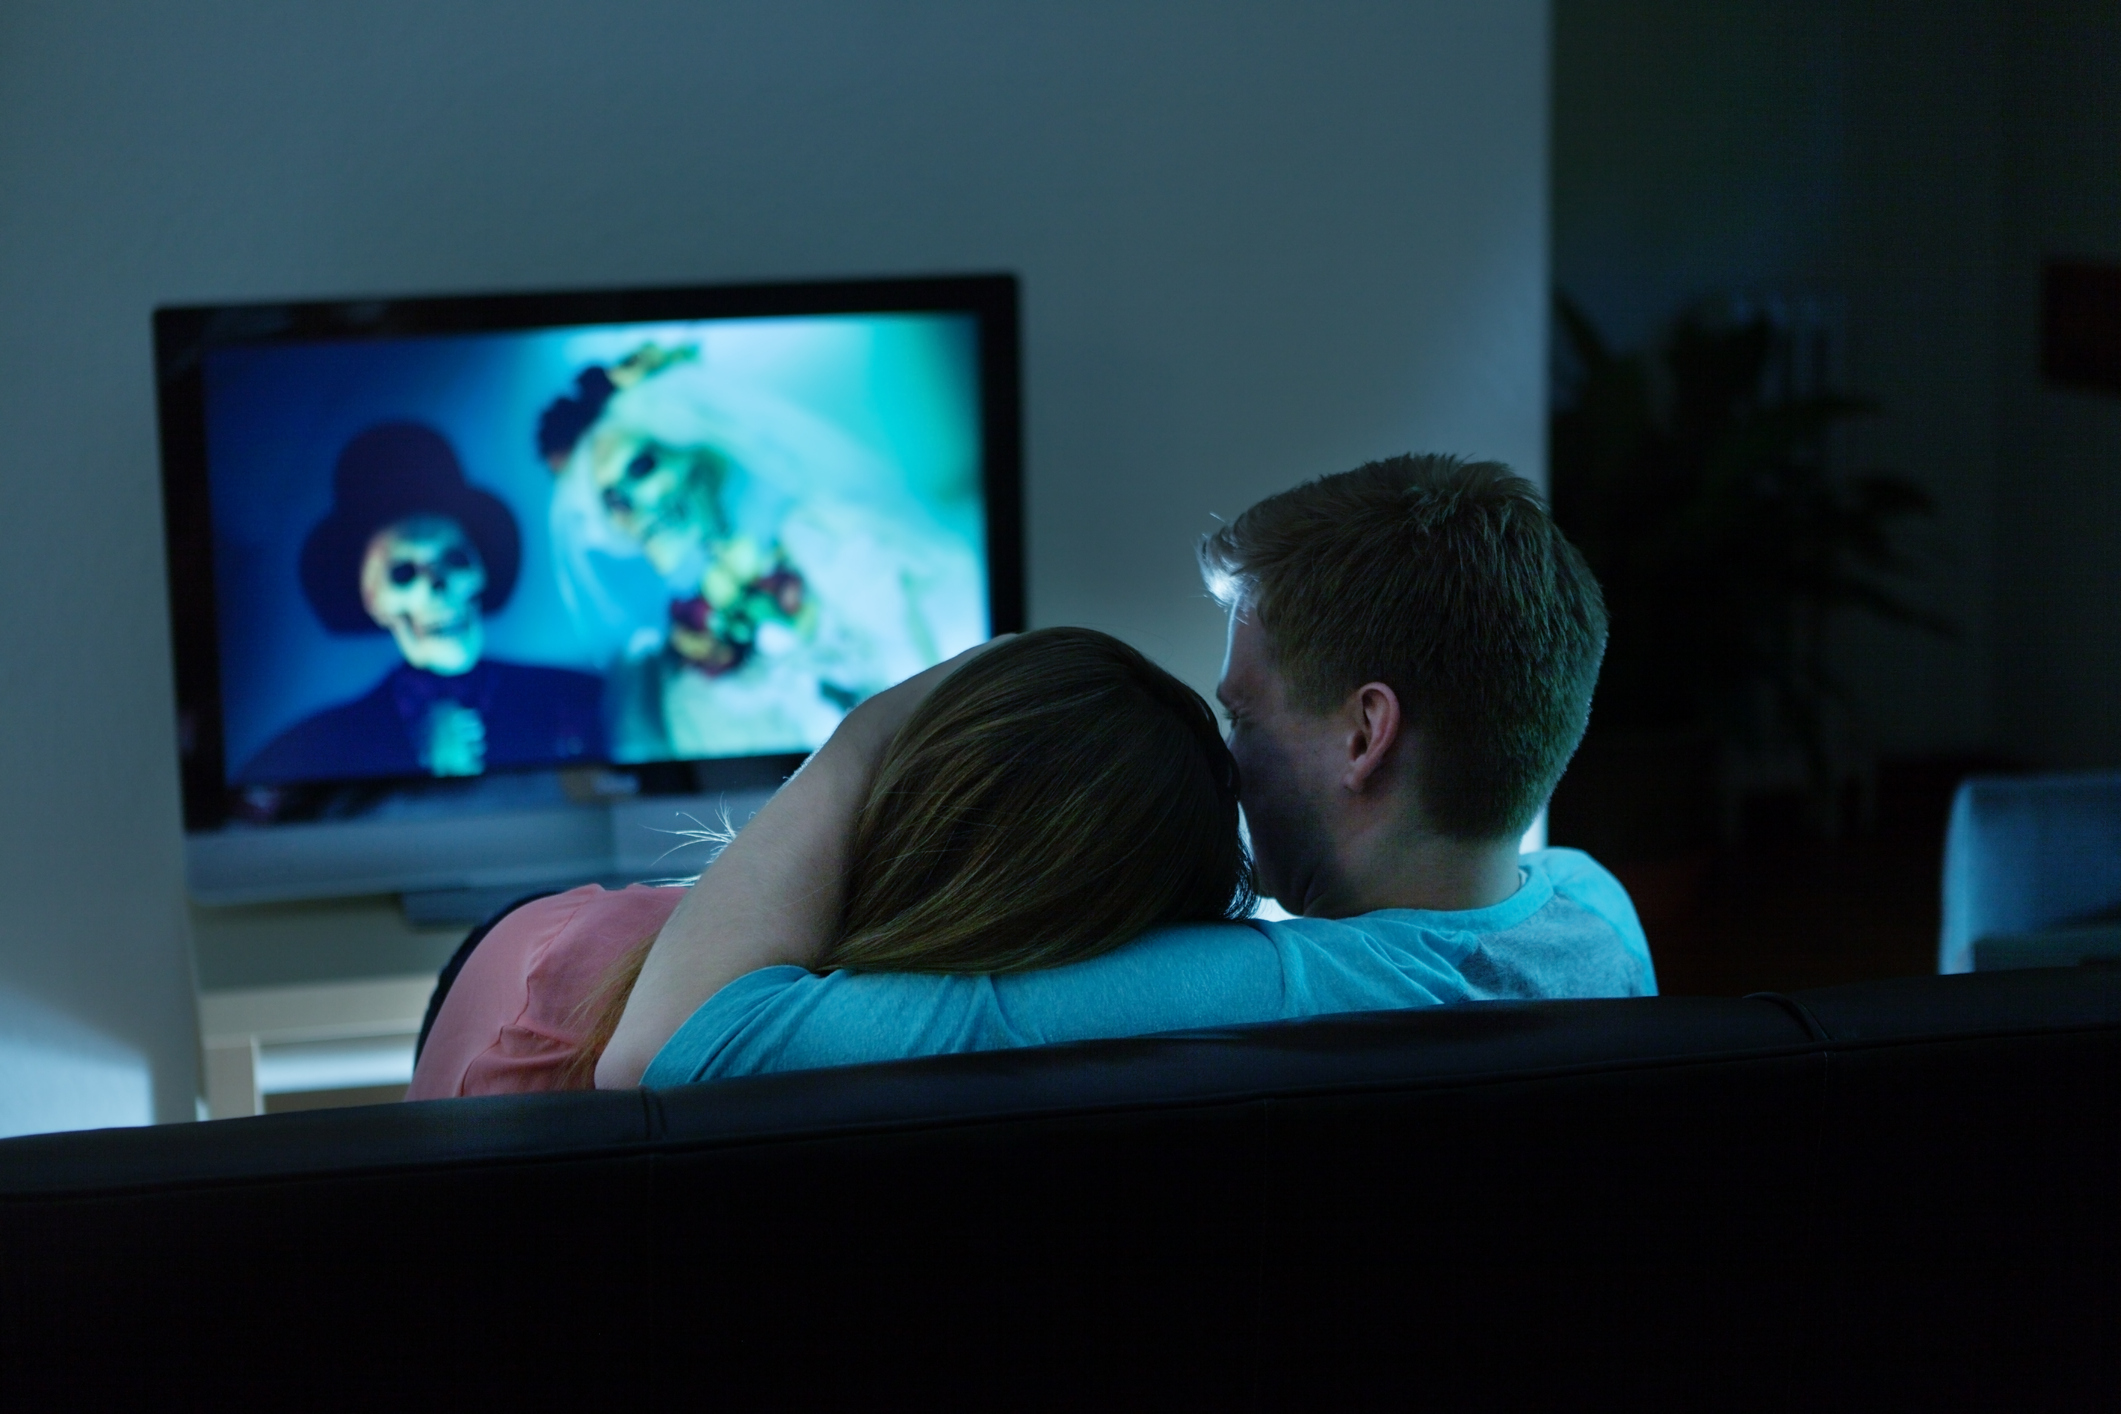 Couple Watching Scary Halloween Movie Together on TV